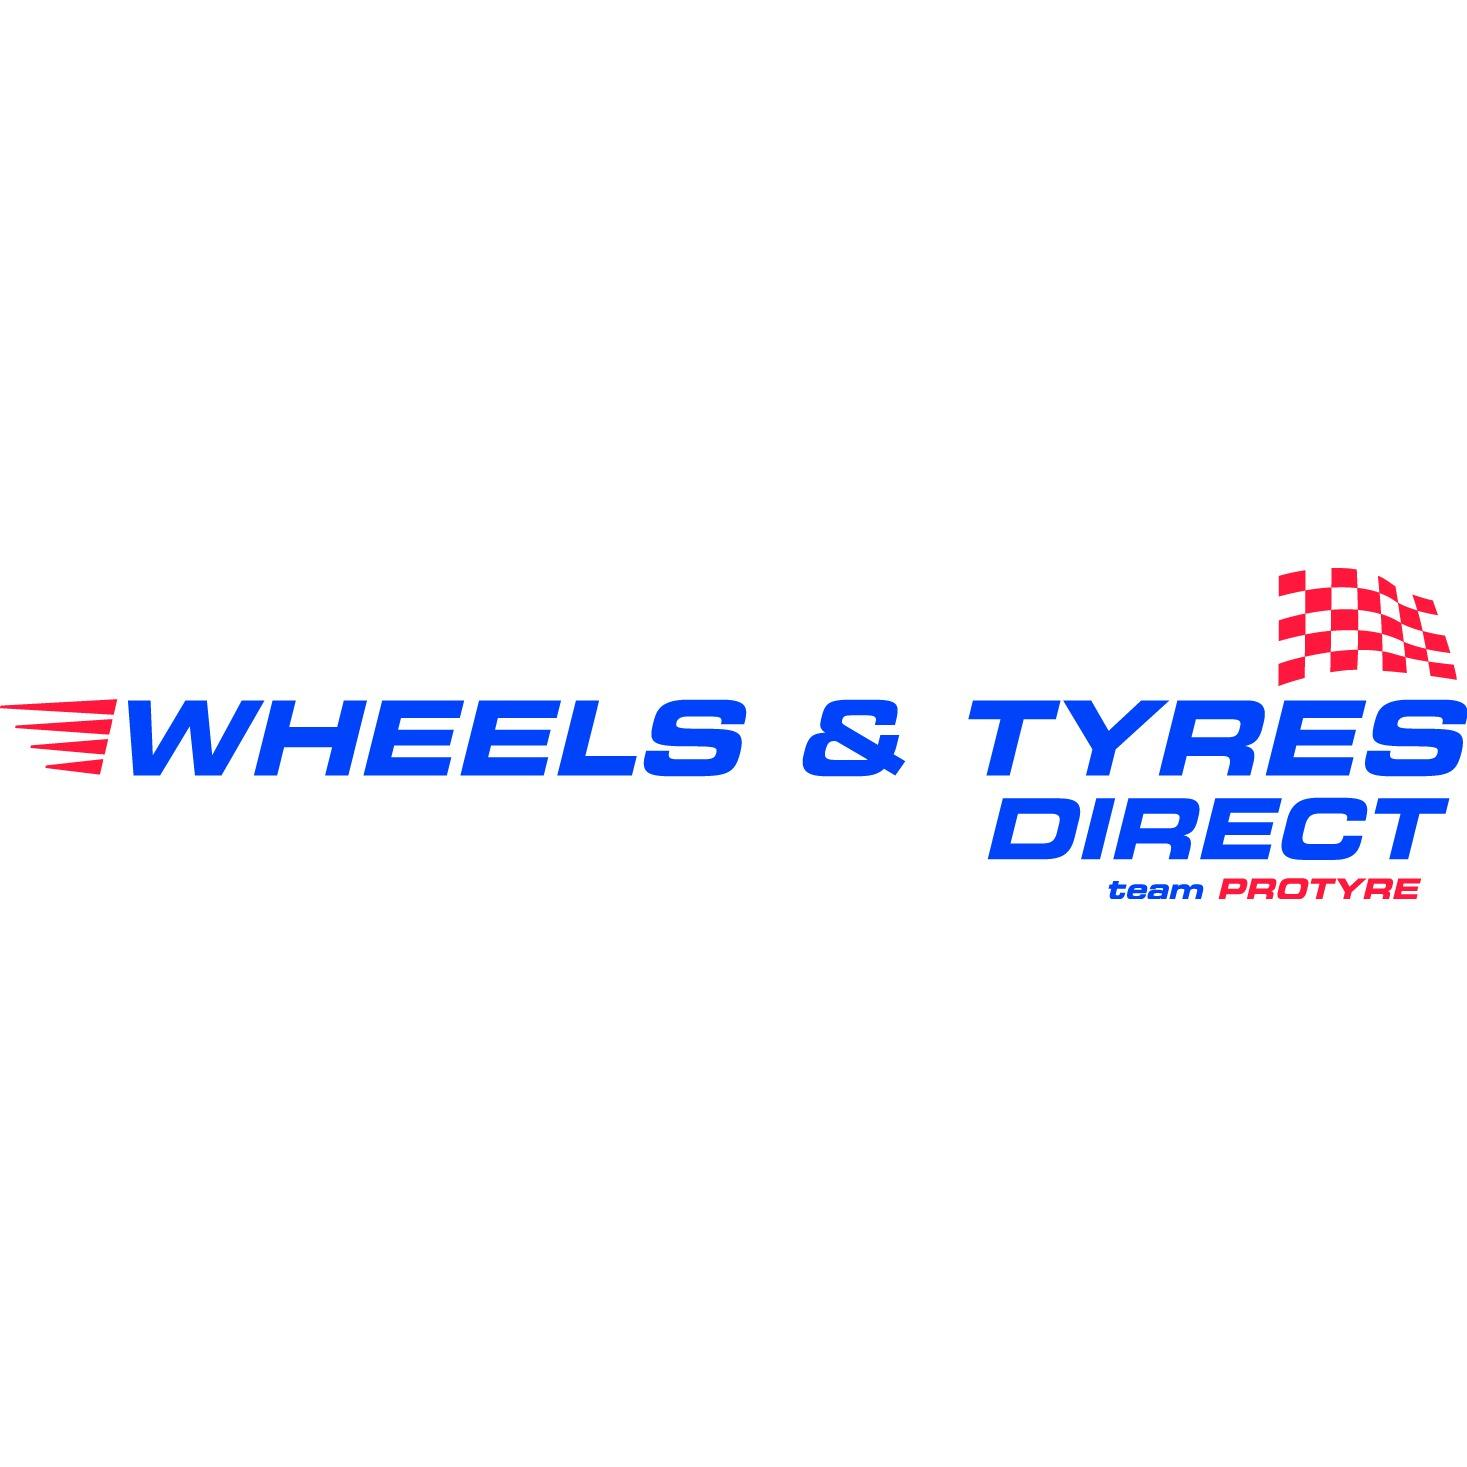 Wheels & Tyres Direct - Team Protyre - Halesworth, Essex IP19 8EN - 01986 873661 | ShowMeLocal.com